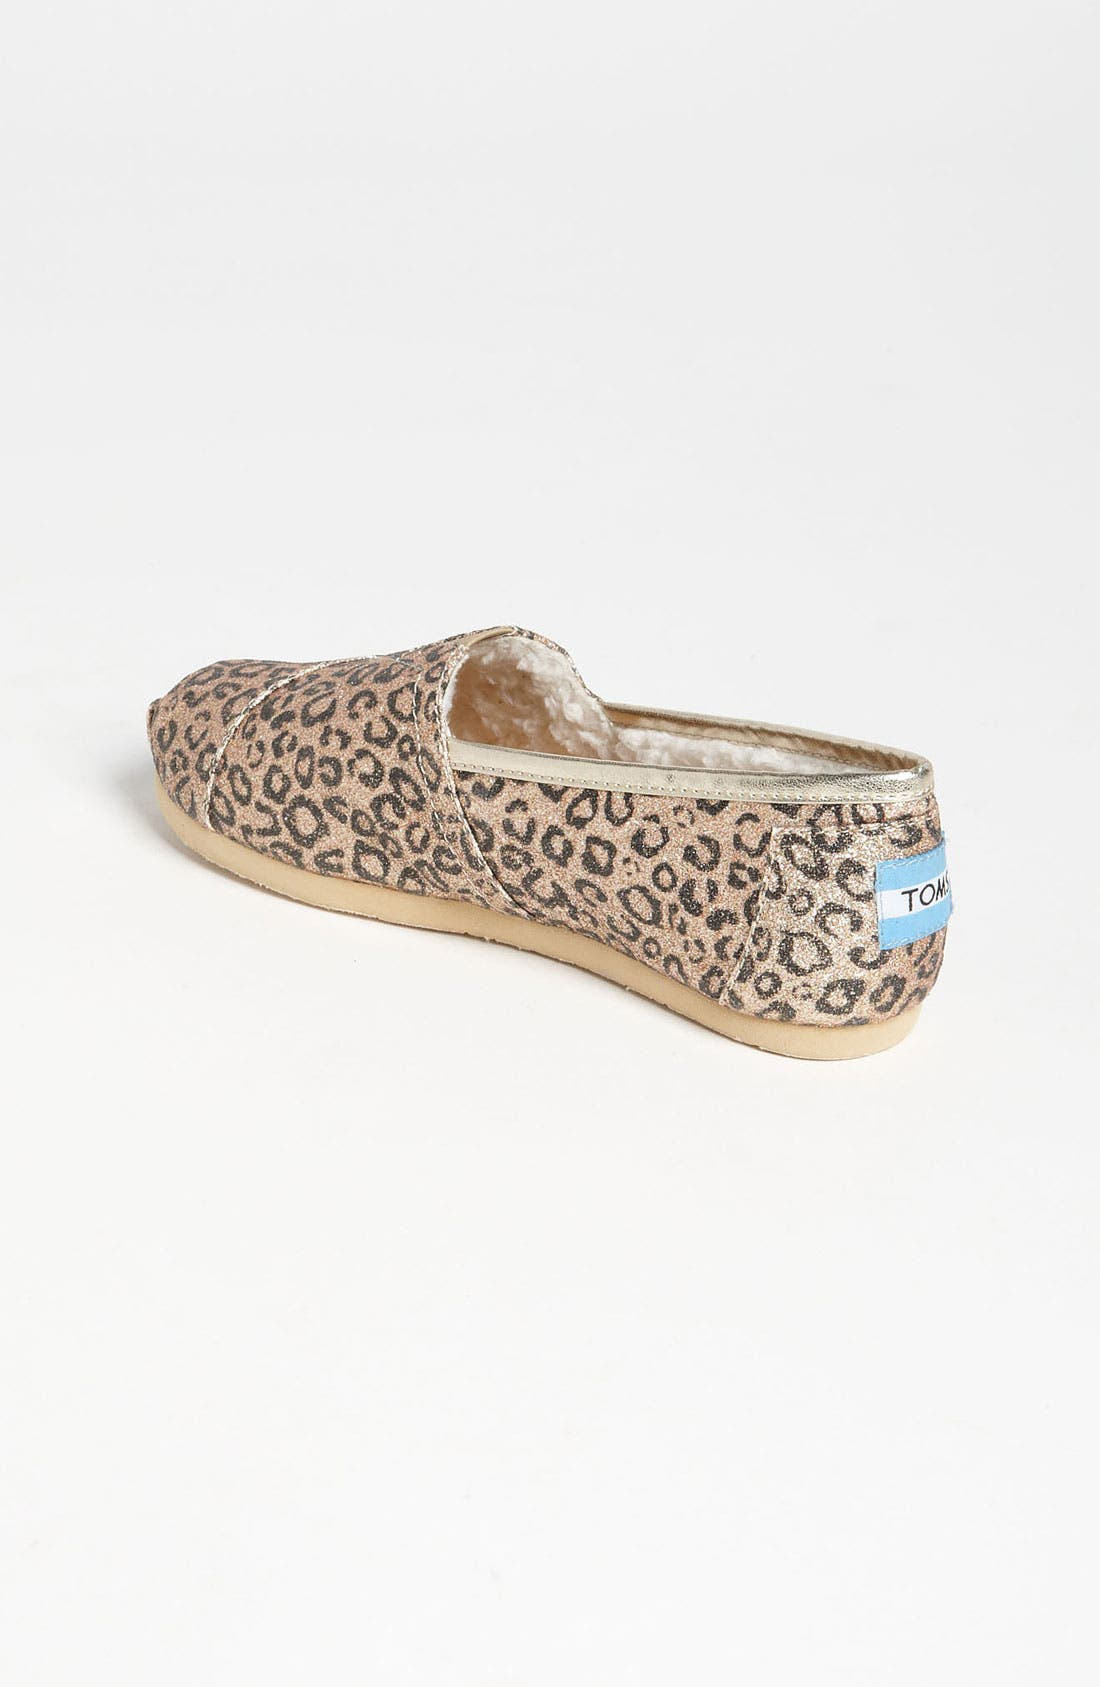 Alternate Image 2  - TOMS 'Classic Youth - Glitter' Print Slip-On (Toddler, Little Kid & Big Kid) (Nordstrom Exclusive)